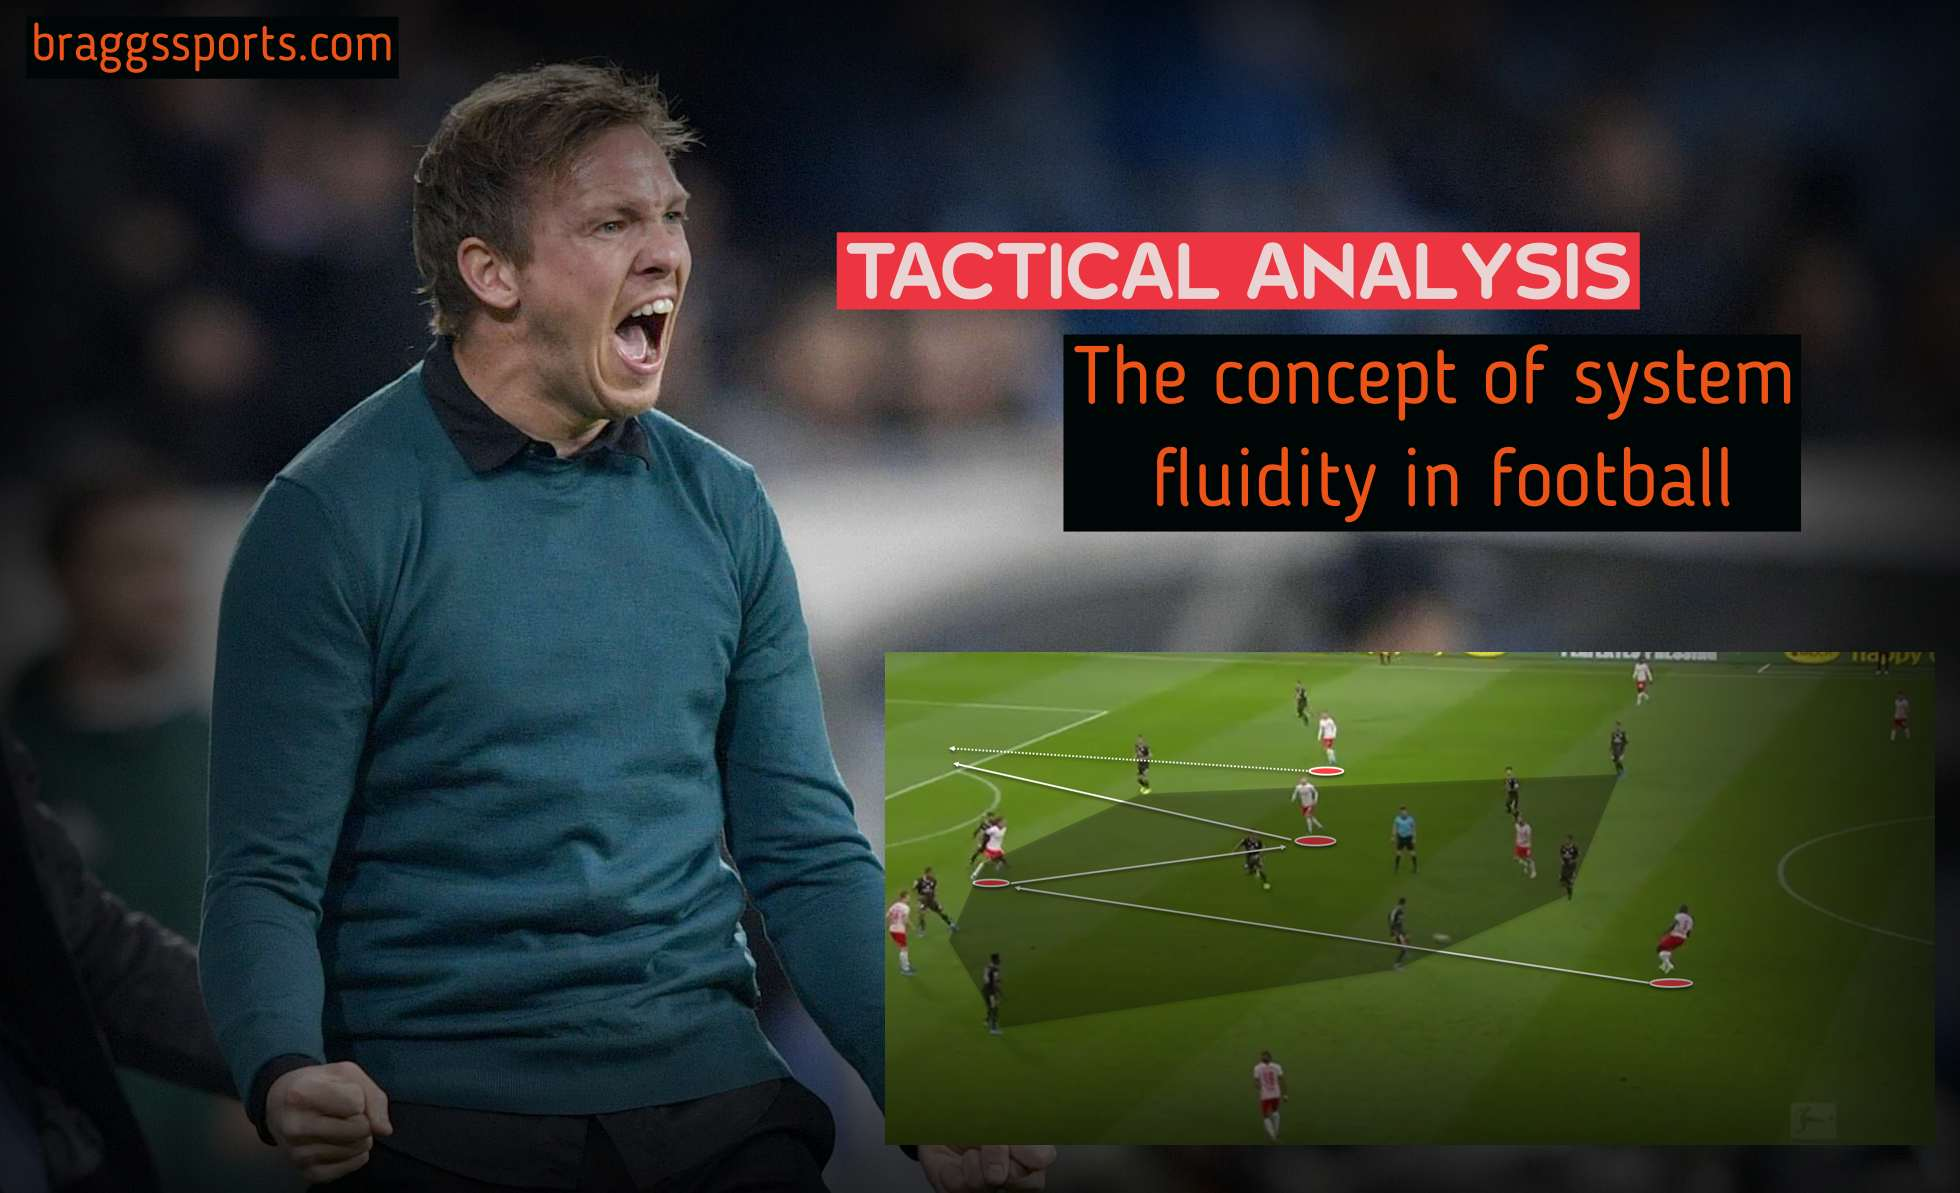 The concept of system fluidity in football